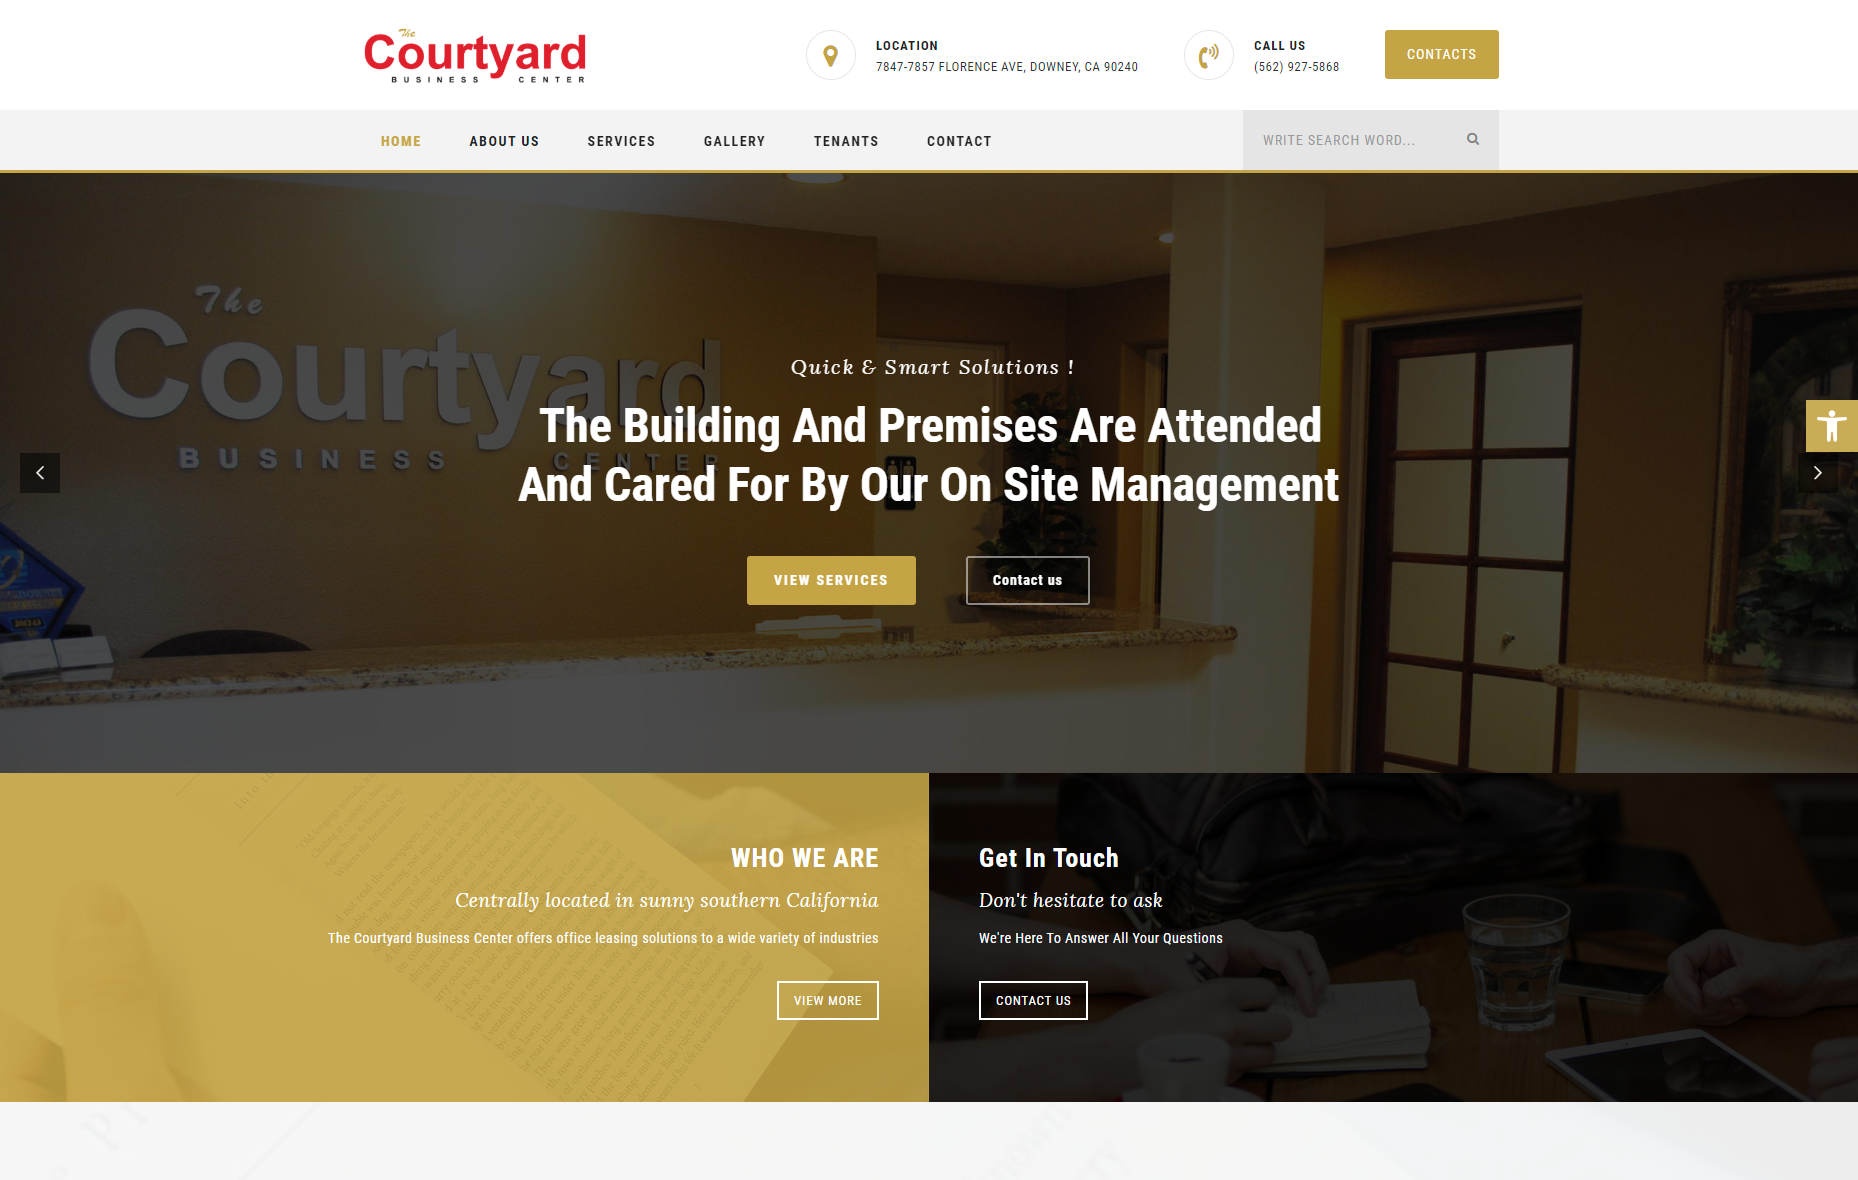 Case Studies: The Courtyard